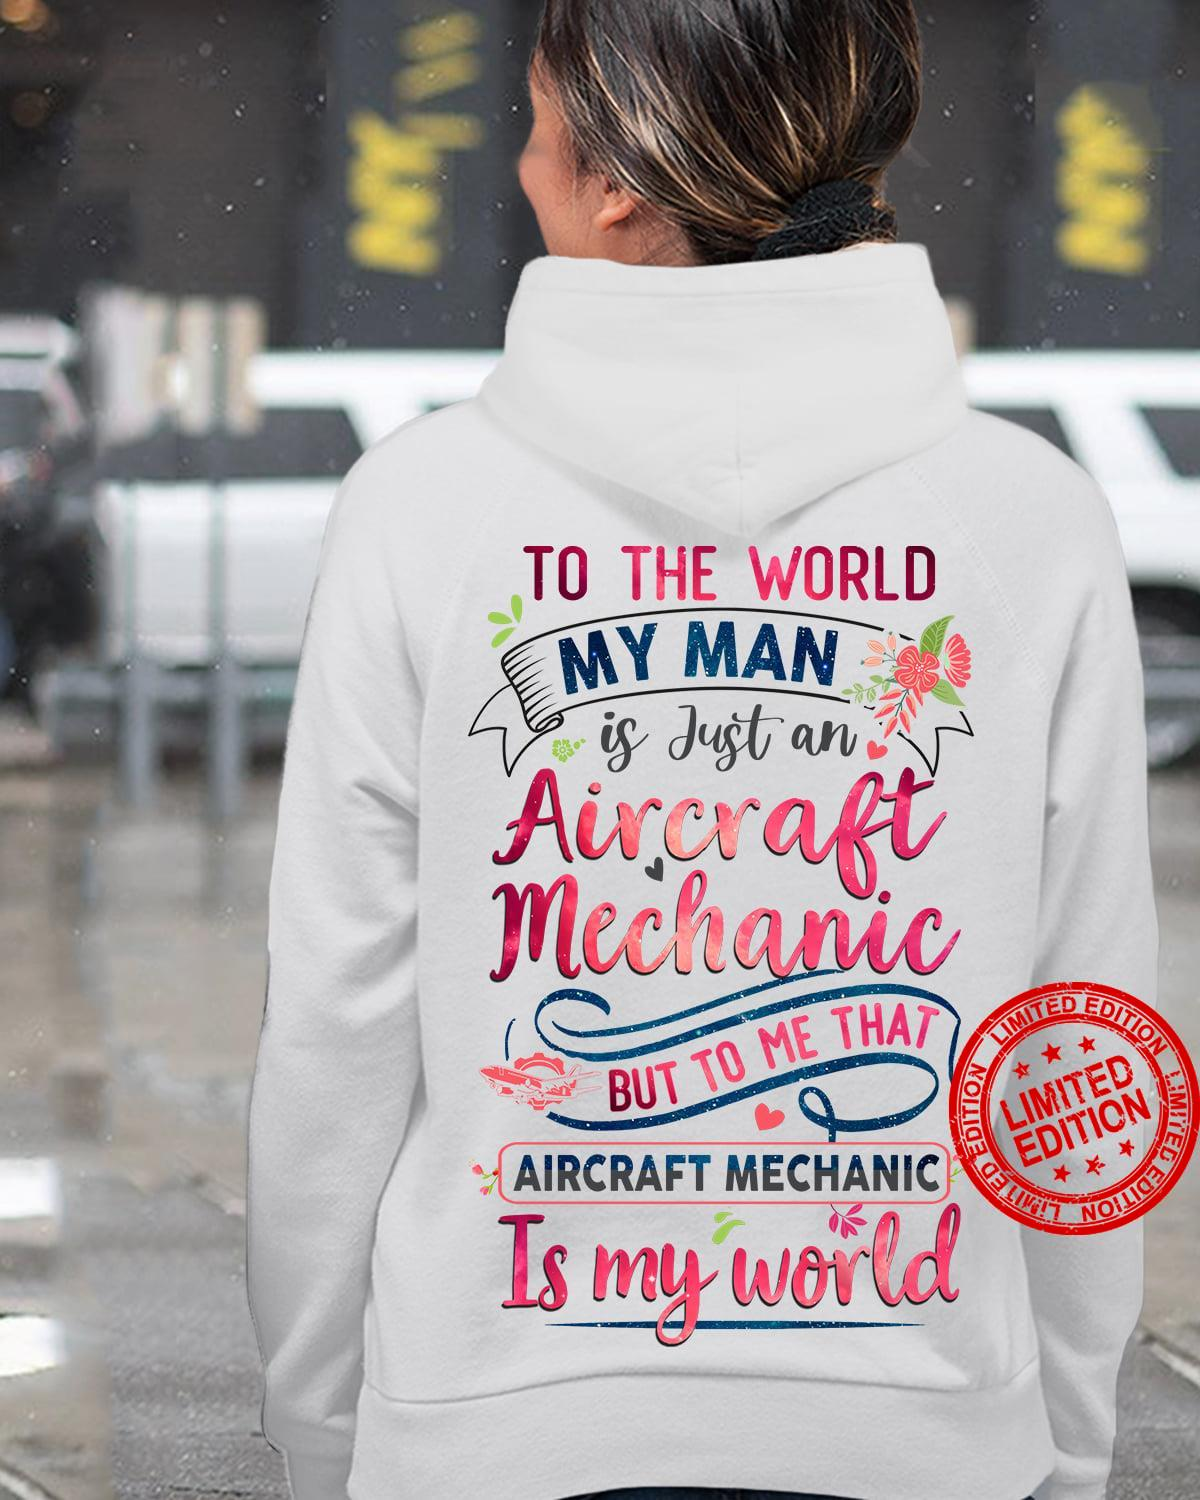 To The World My Man Is Just An Aircraft Mechanic But To Me That Aircraft Mechanic Is My World Shirt